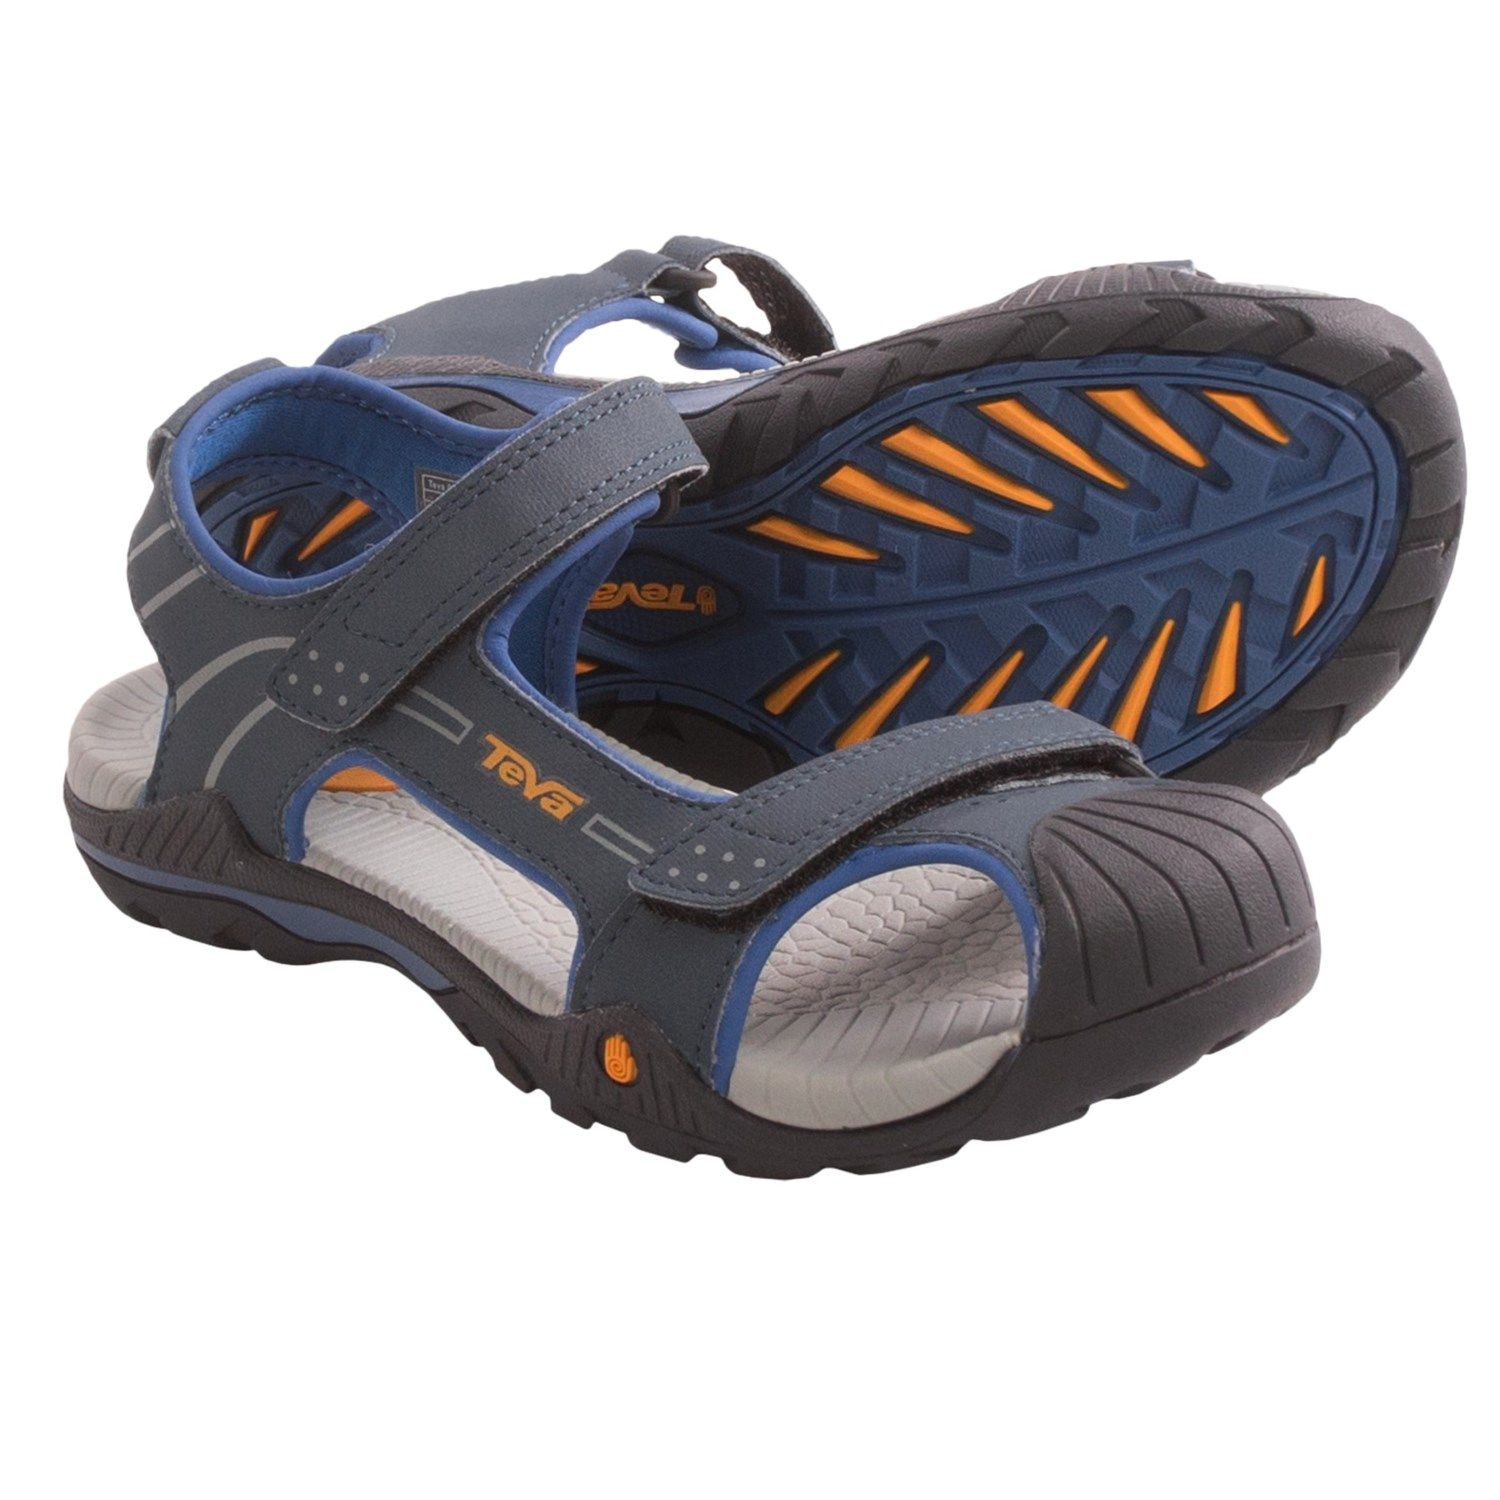 Teva Toachi 2 Sandals (For Kids and Youth) in Navy